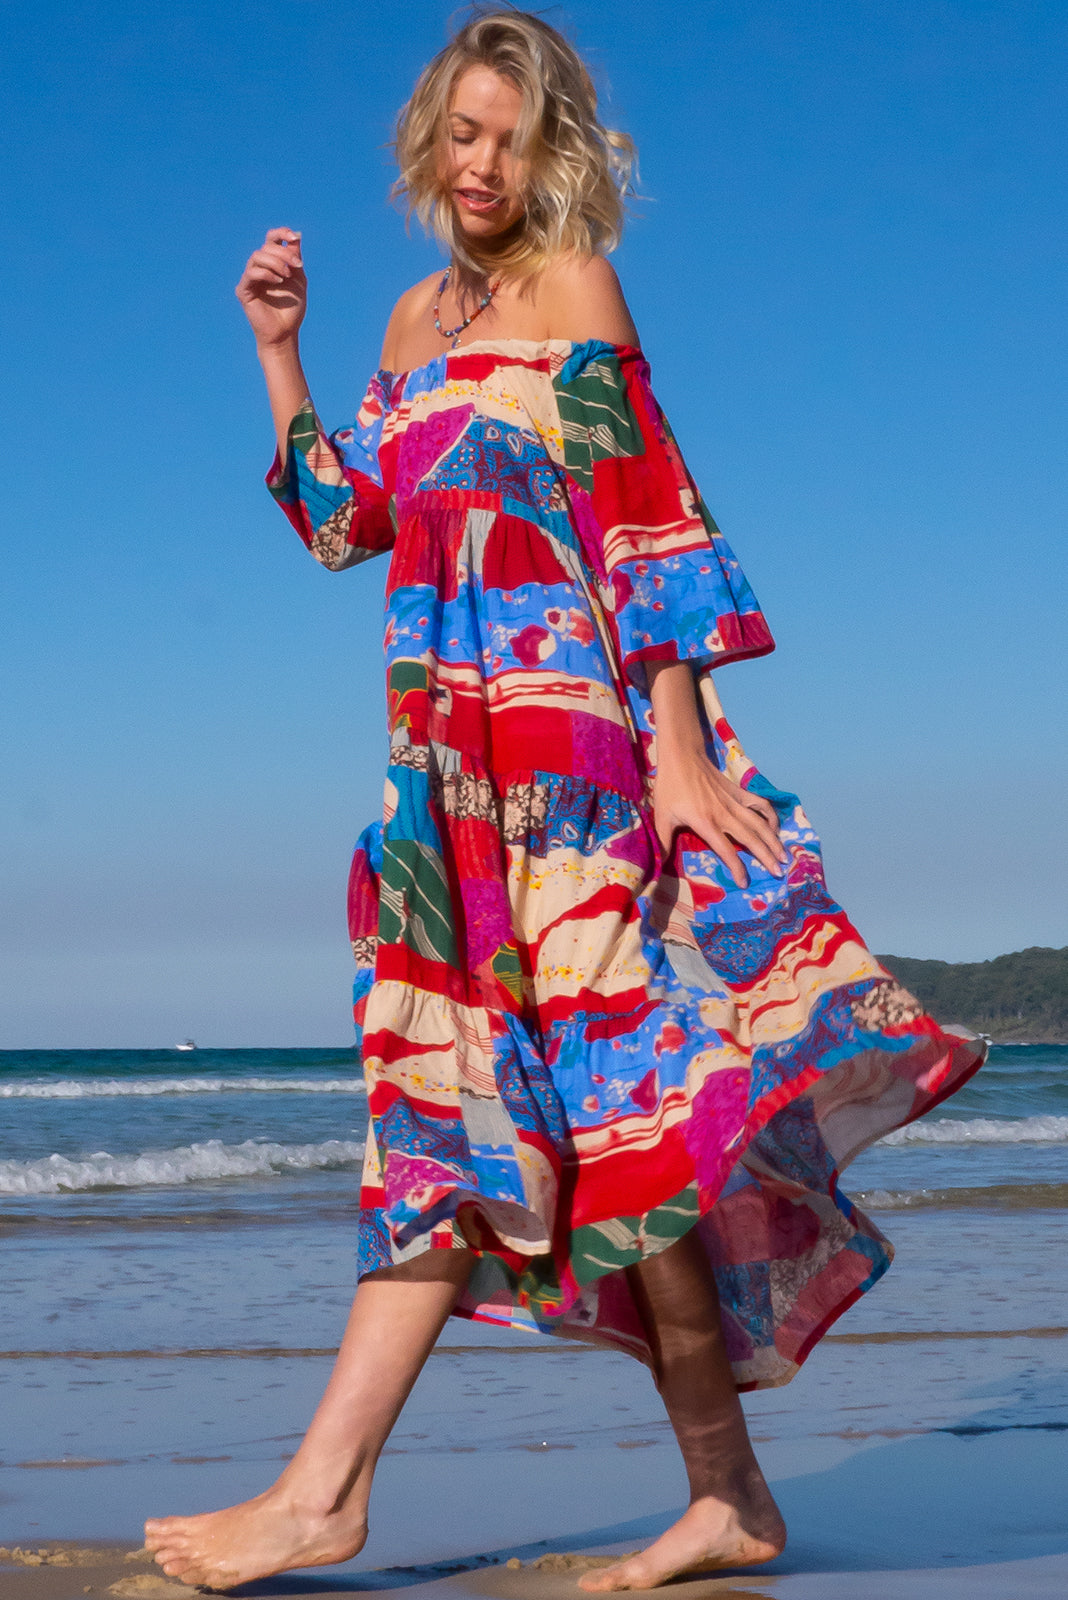 The Lulu Liberty Red Fanfare Swing Maxi Dress can be worn 2 ways, off the shoulder style or on top of shoulders in scooped neck style and features adjustable tie, fabric belt included to cinch in waist and 100% cotton in retro, multicoloured patchwork print.